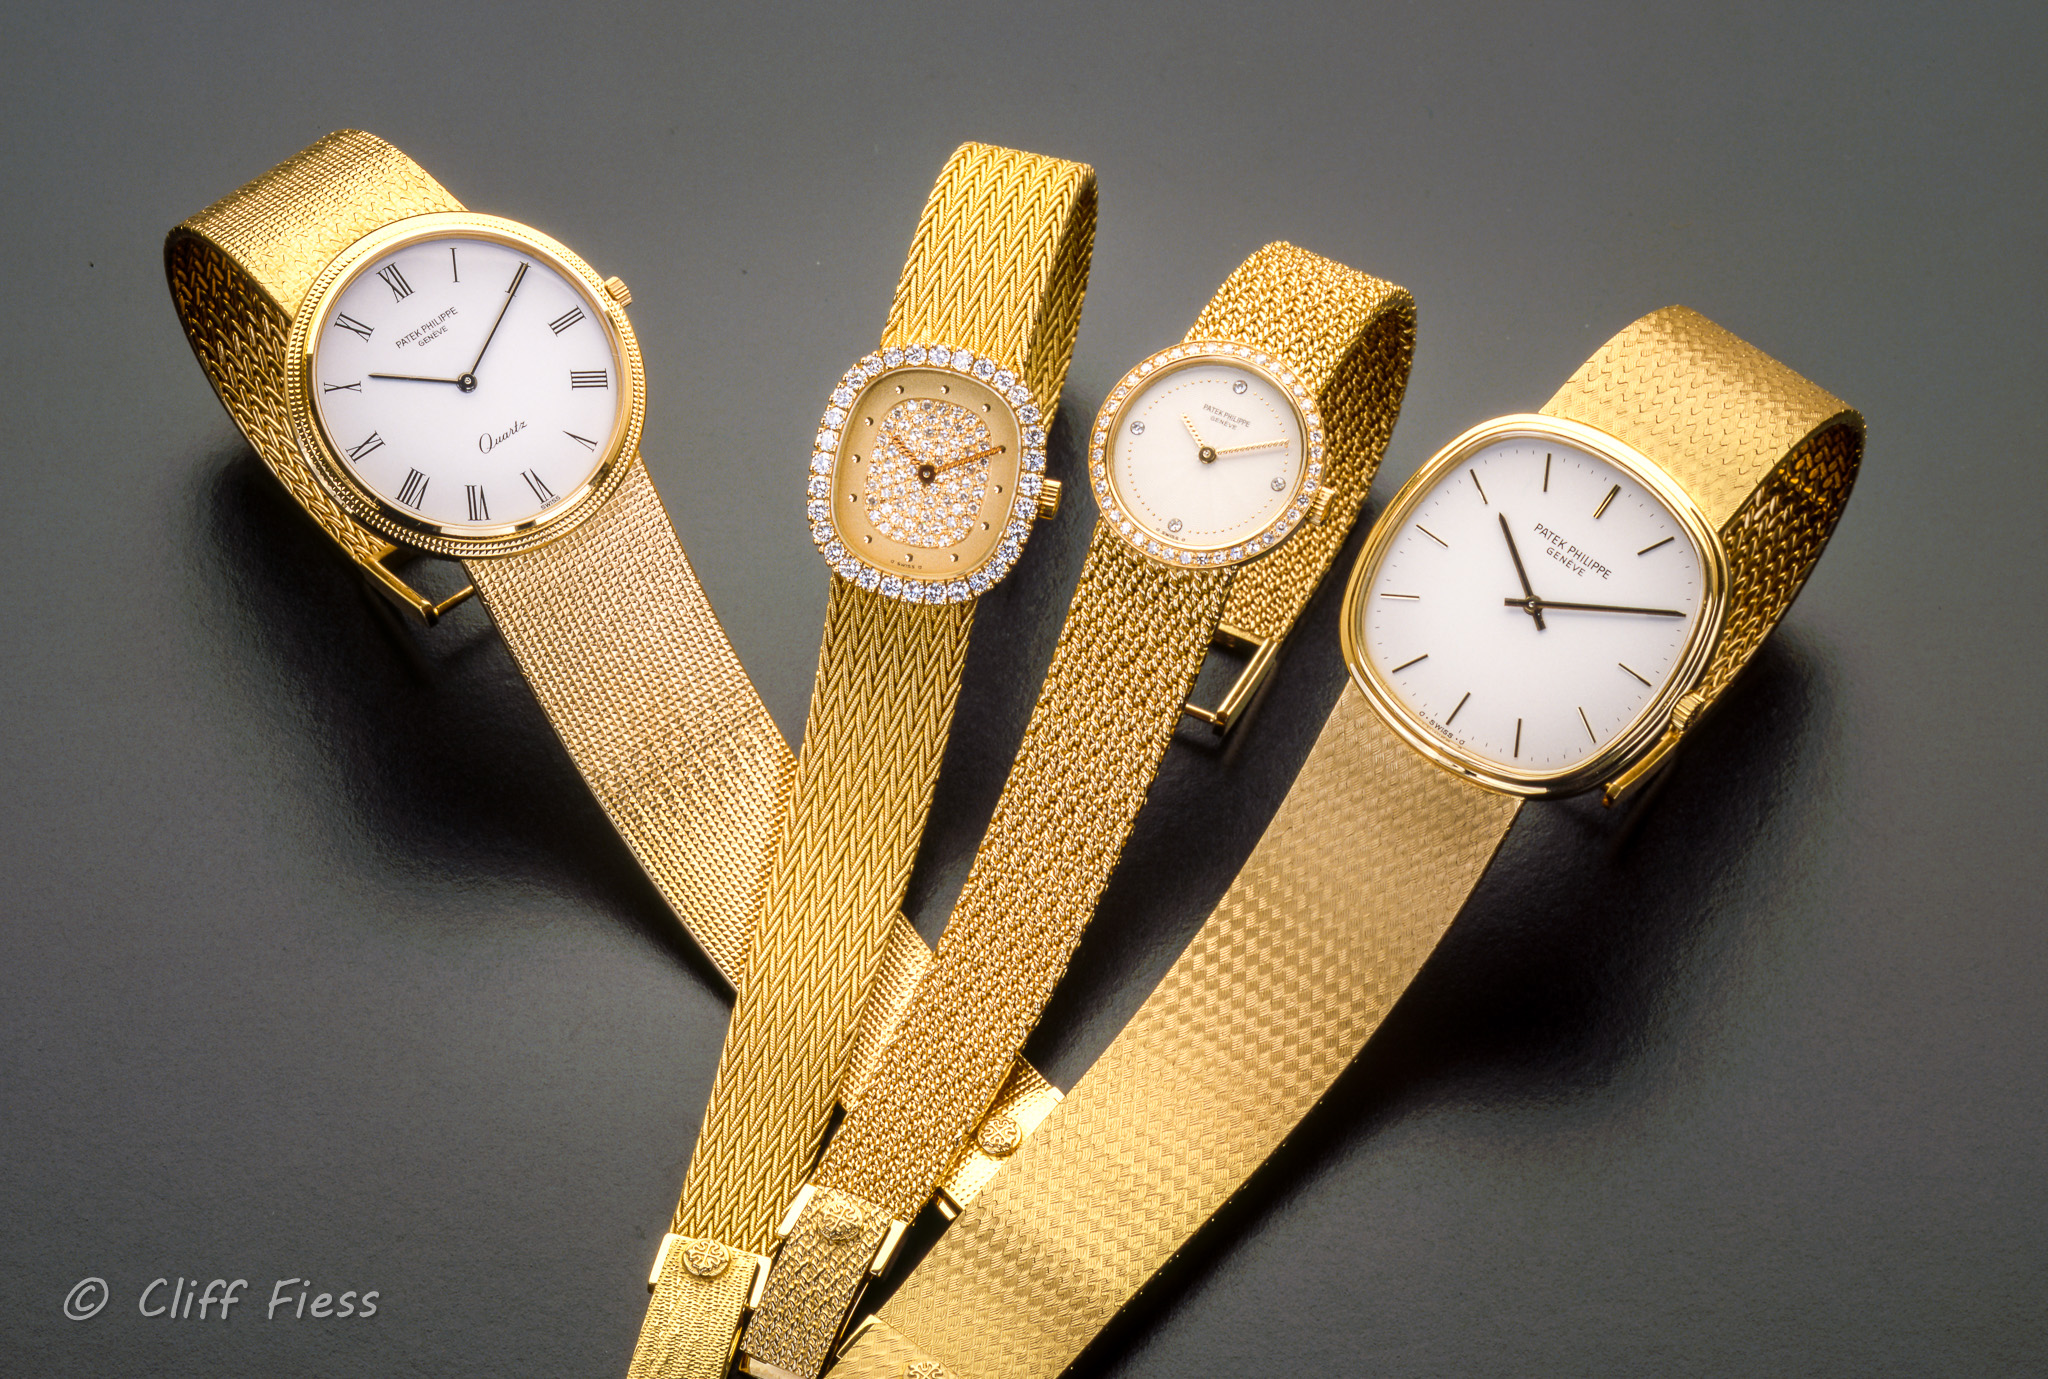 Watches as Jewelry